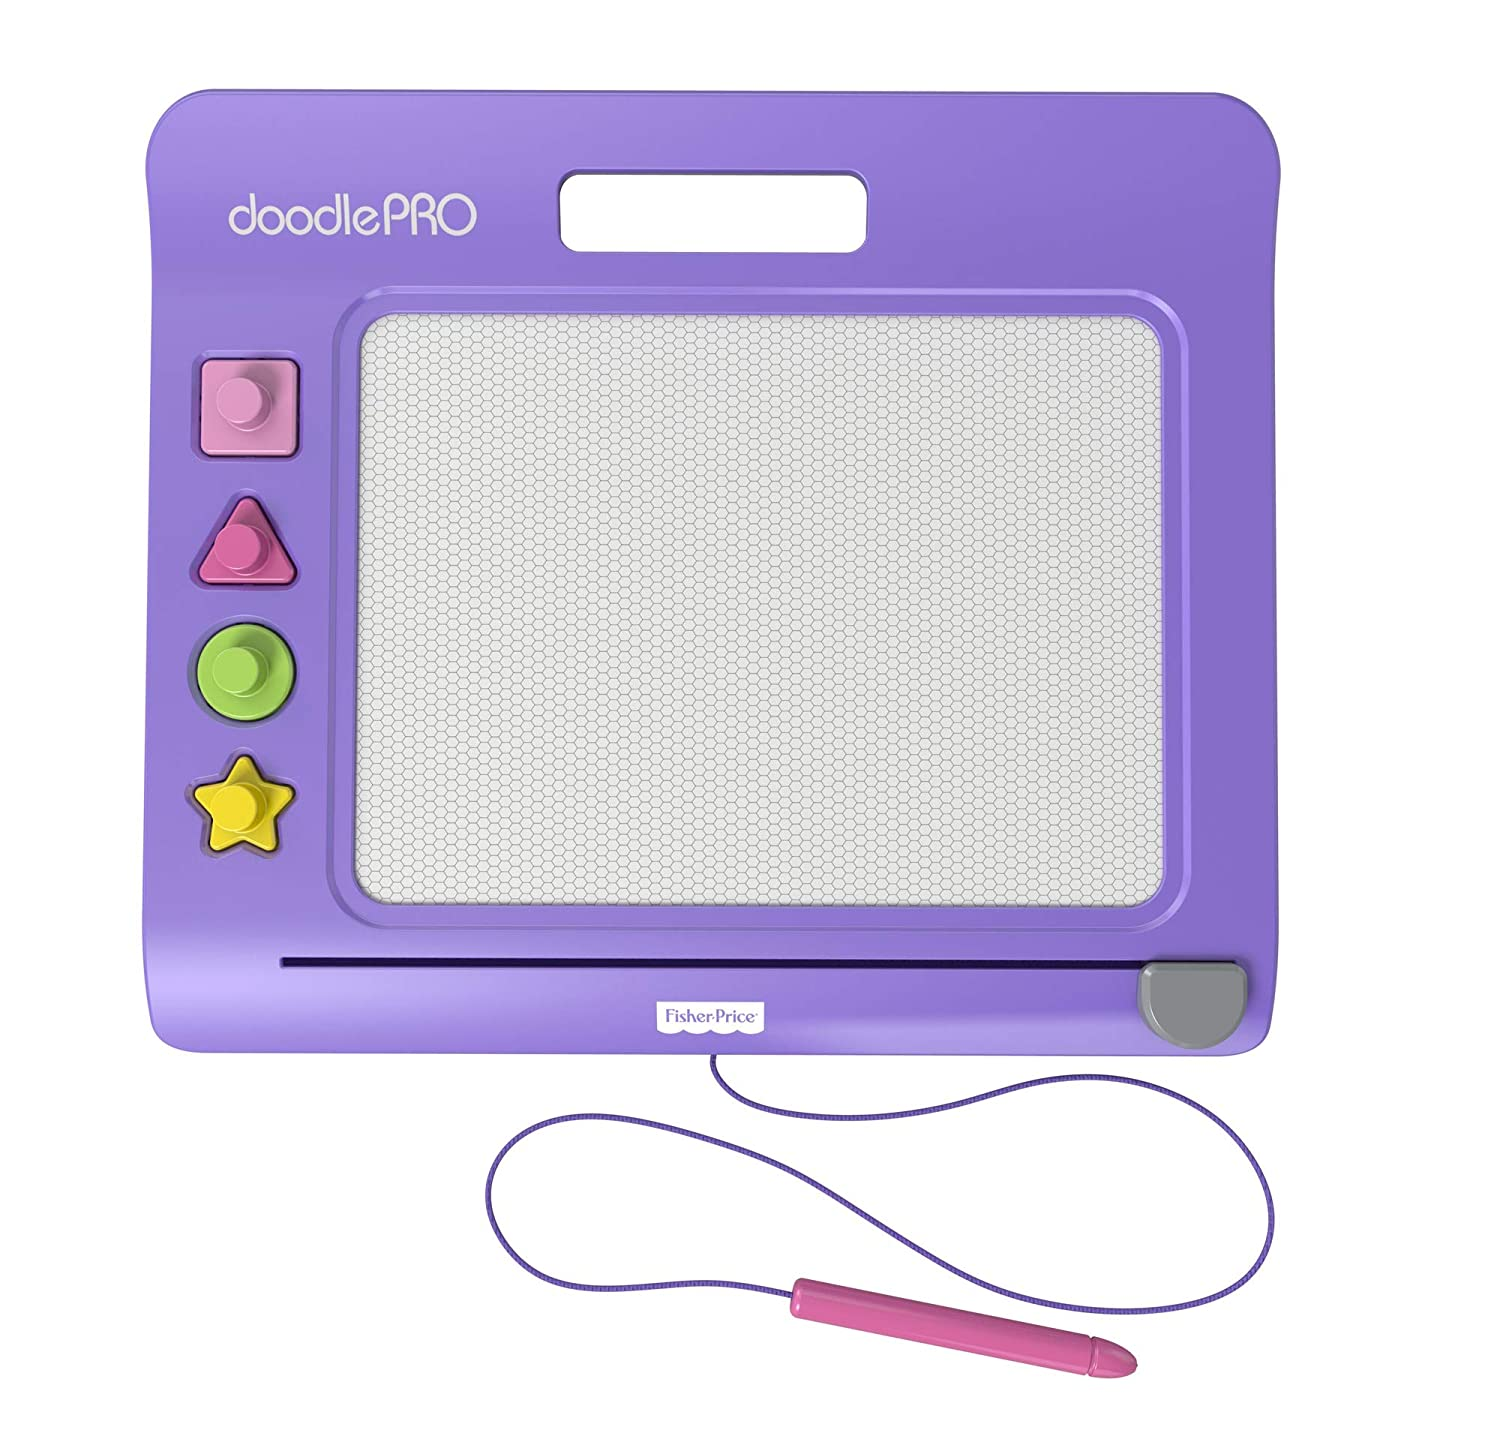 Trip, Fisher-Price DoodlePro Fisher Price Import DGC33 Red